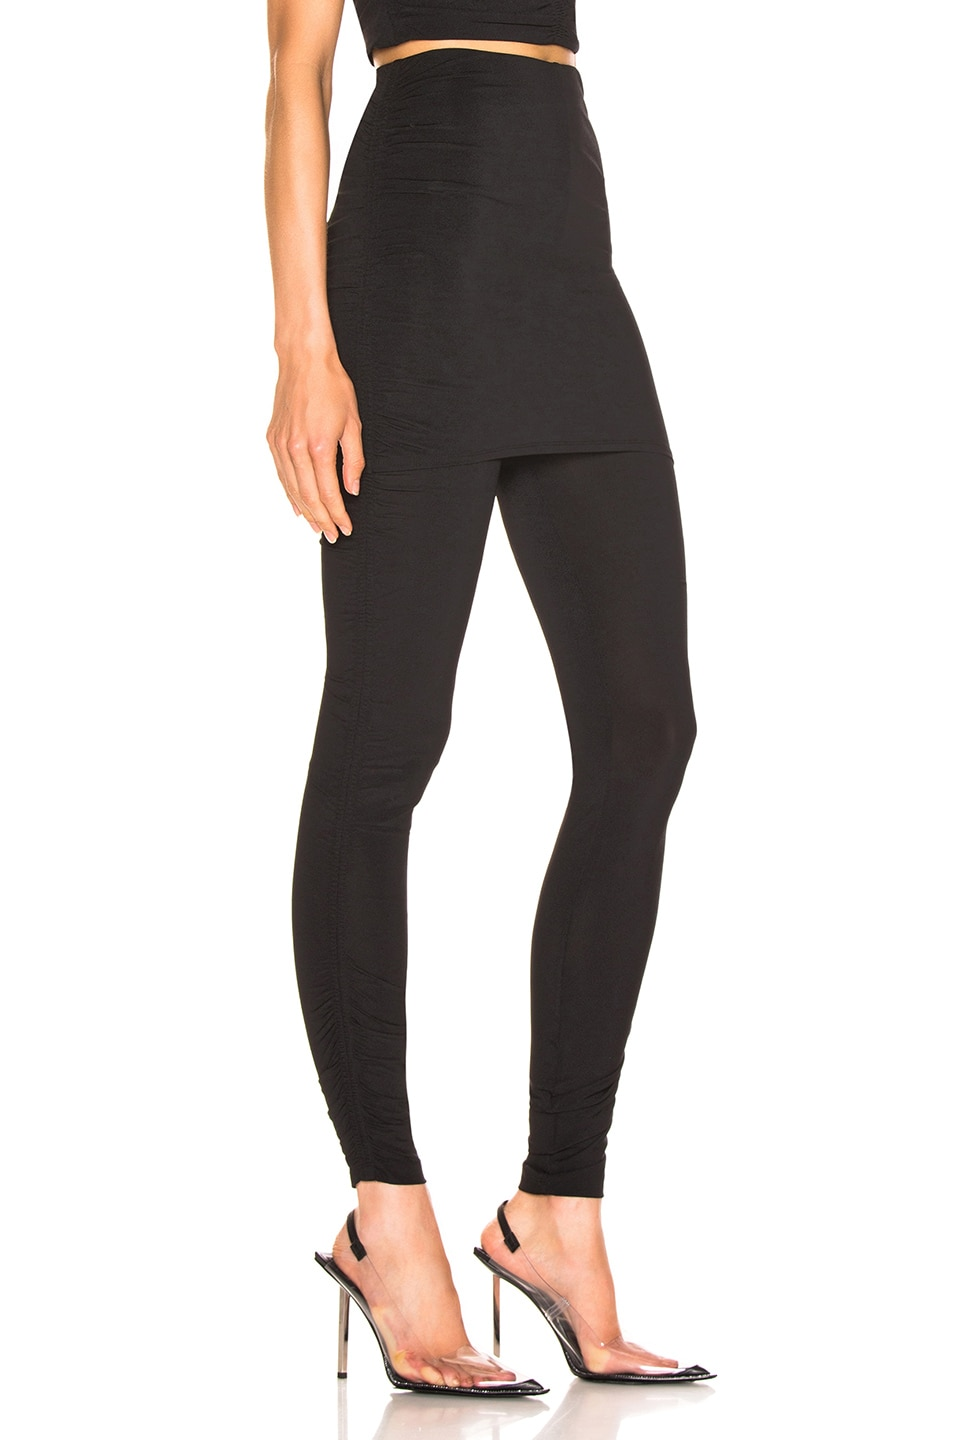 Image 2 of T by Alexander Wang Crepe Twist Legging in Black